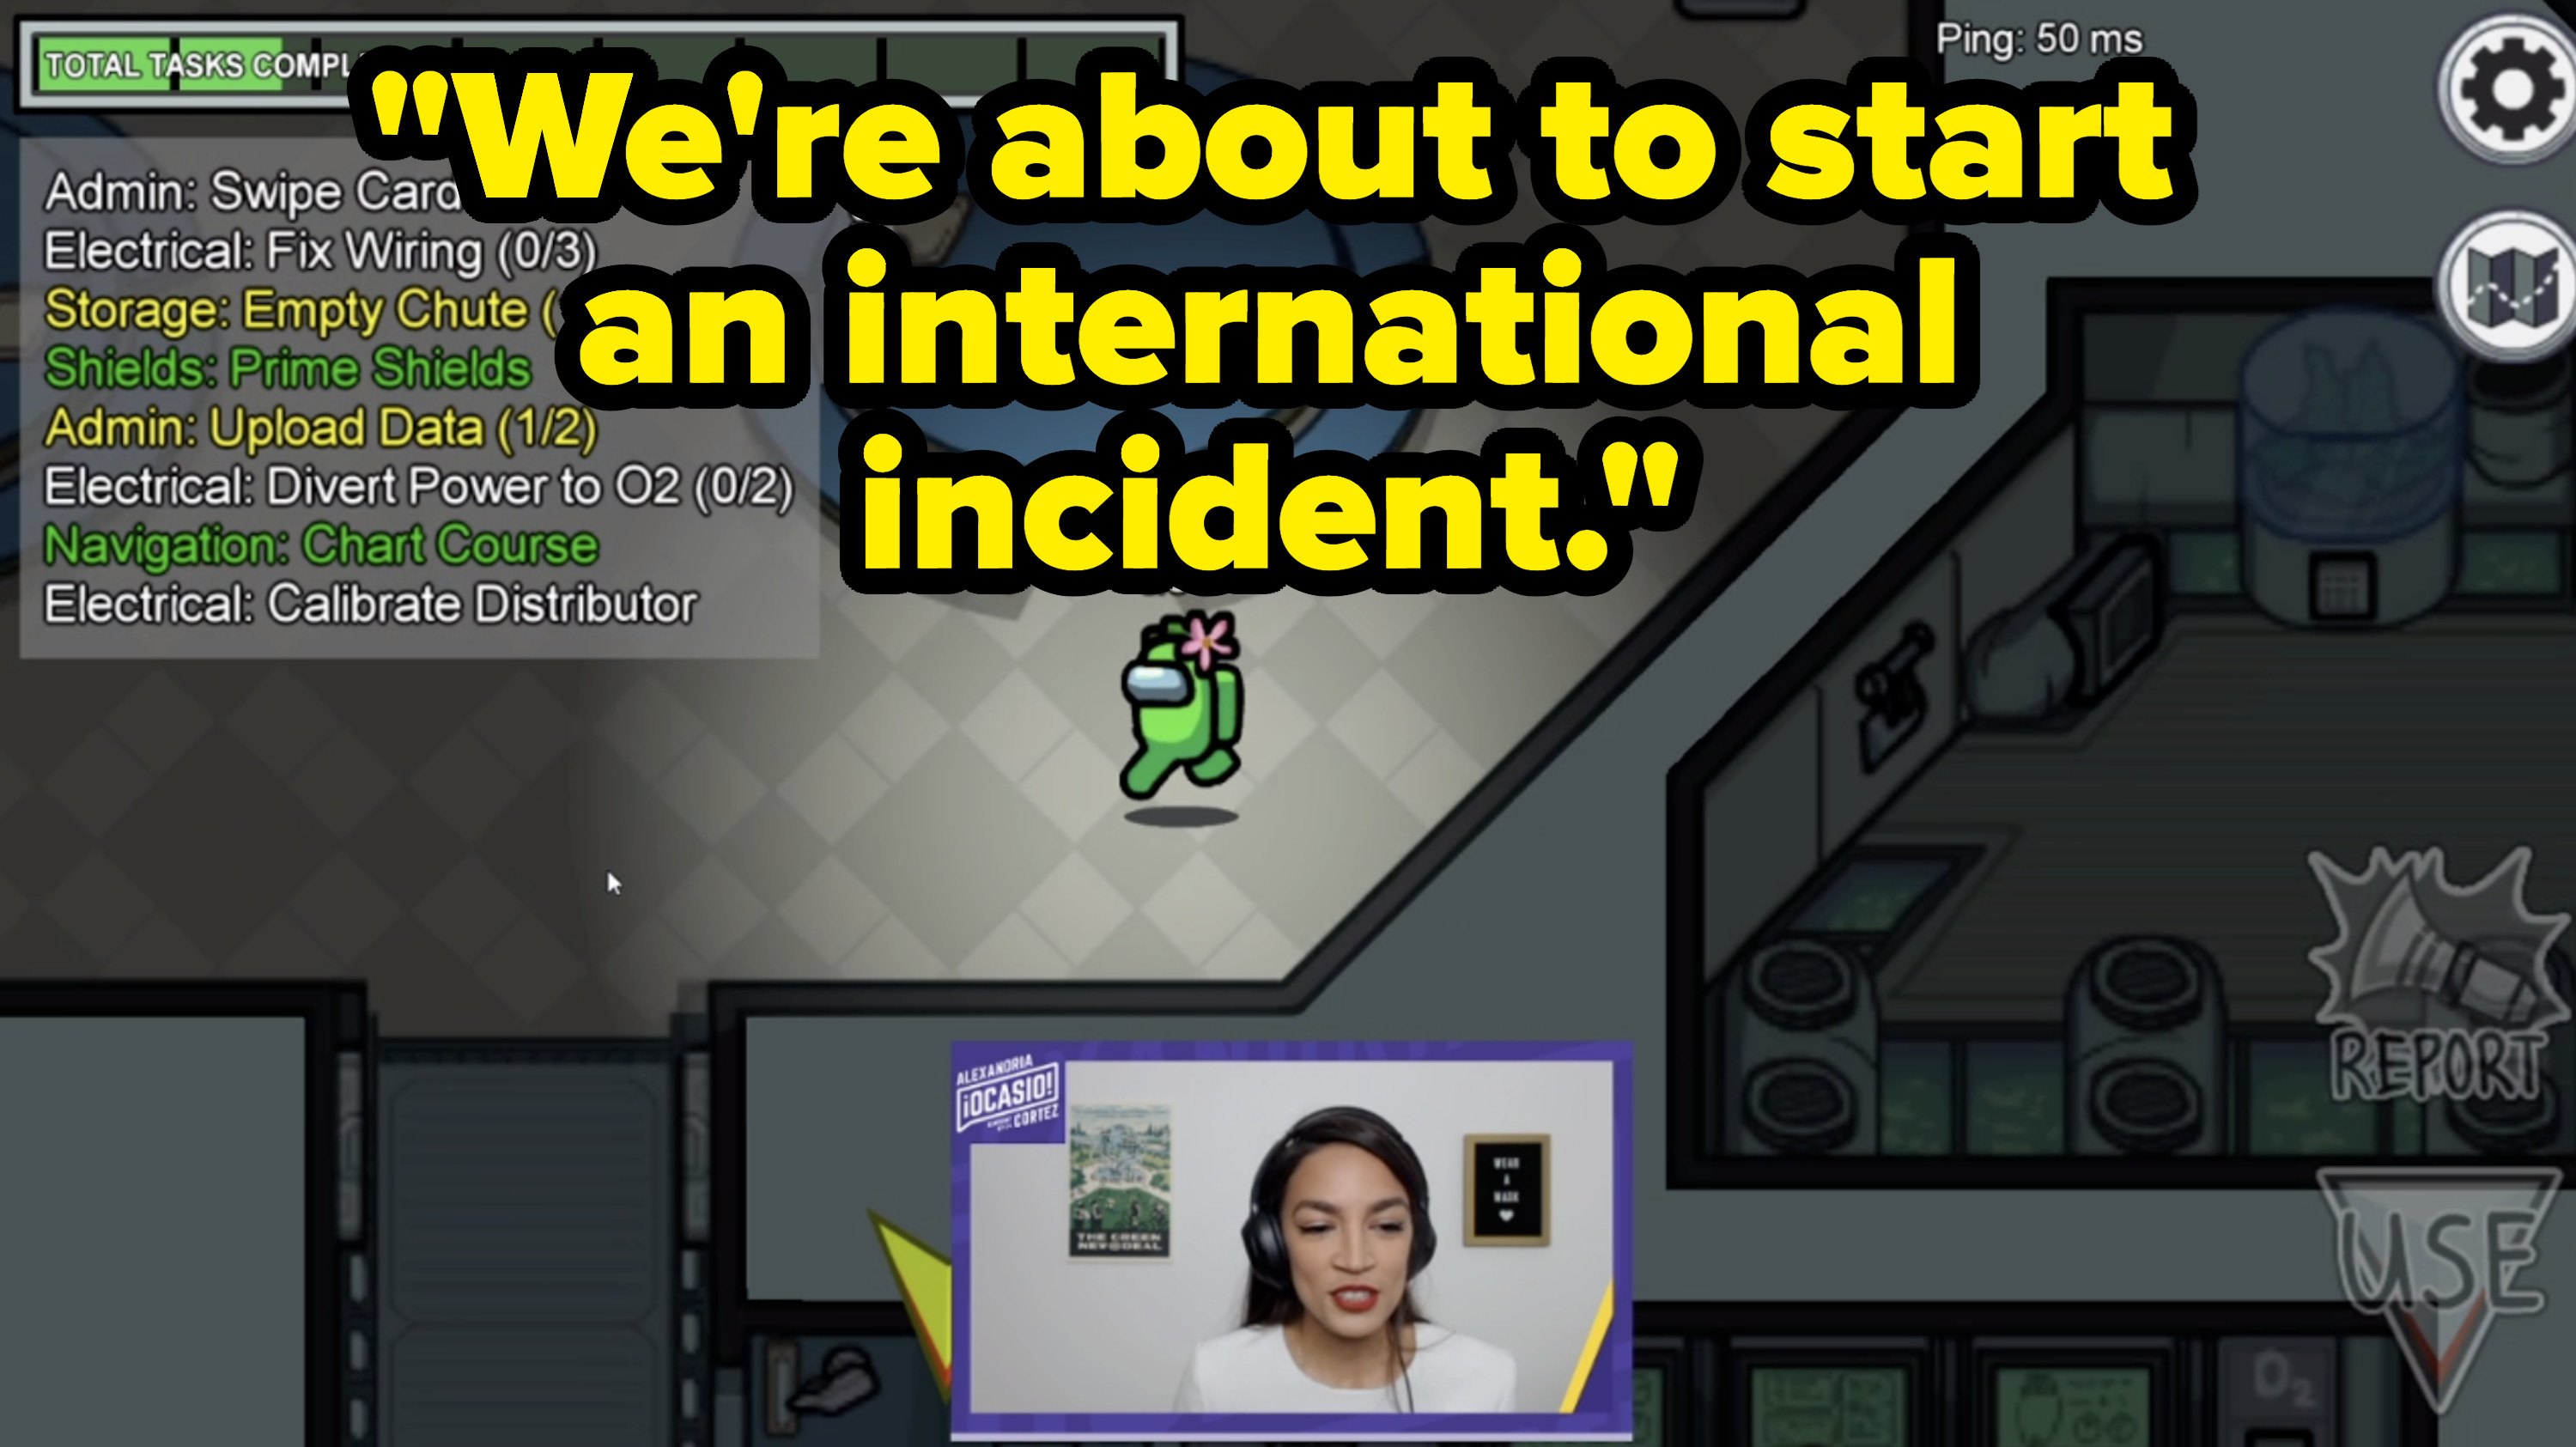 AOC says, We're about to start an international incident